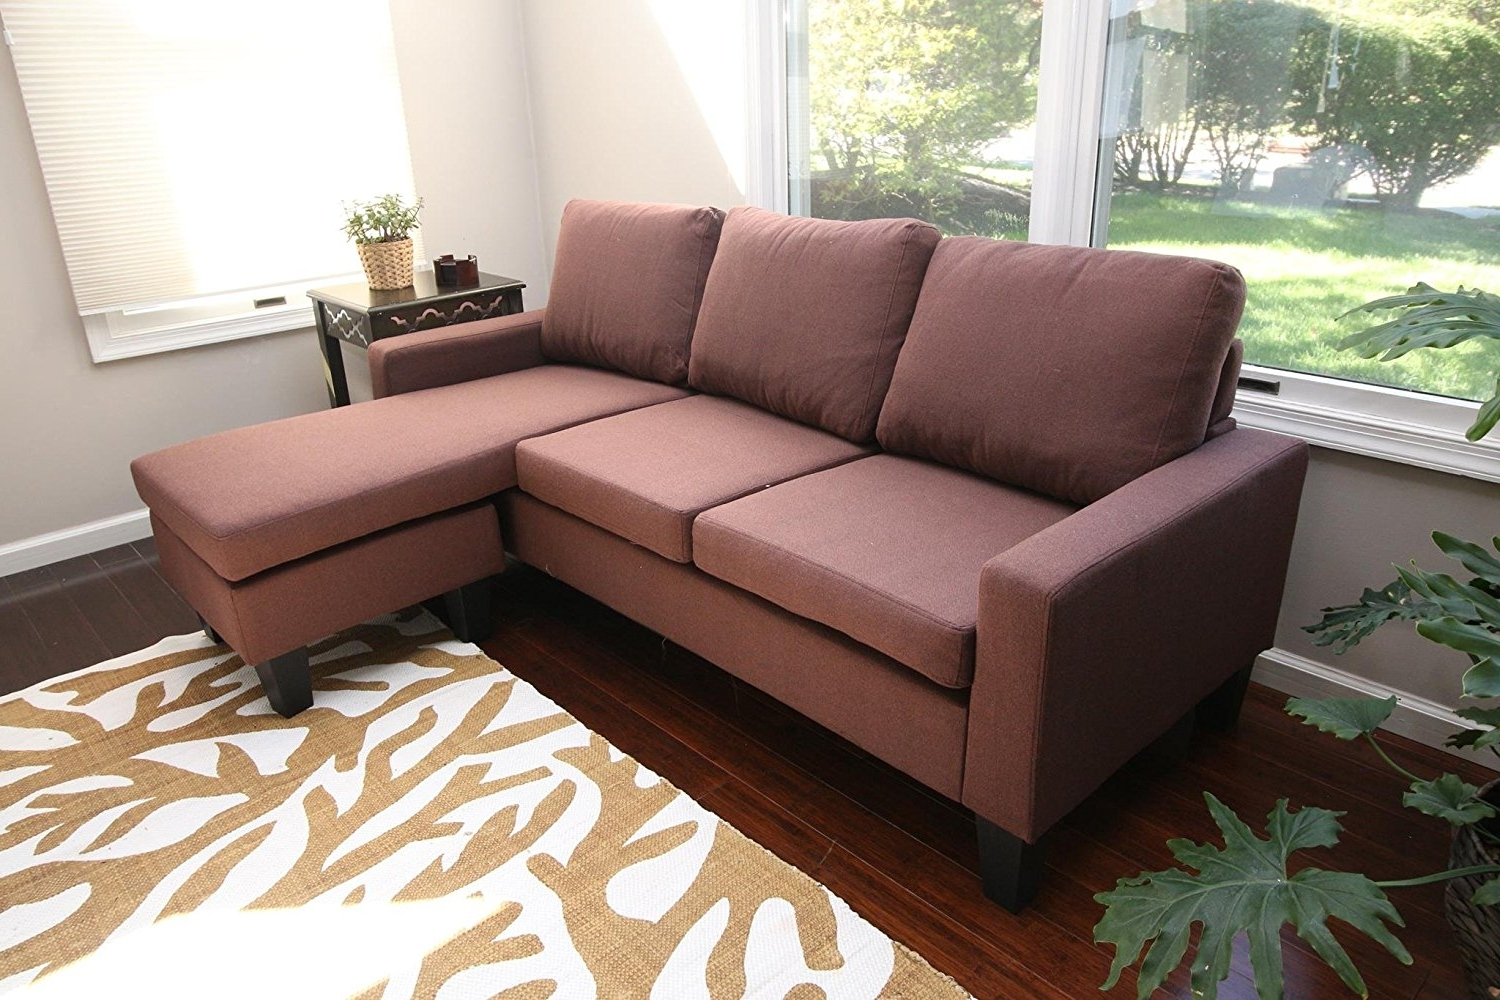 80X80 Sectional Sofas Throughout Trendy Furniture : Corner Couch 3D Model Zen Sectional Sofa Corner Couch (View 1 of 15)